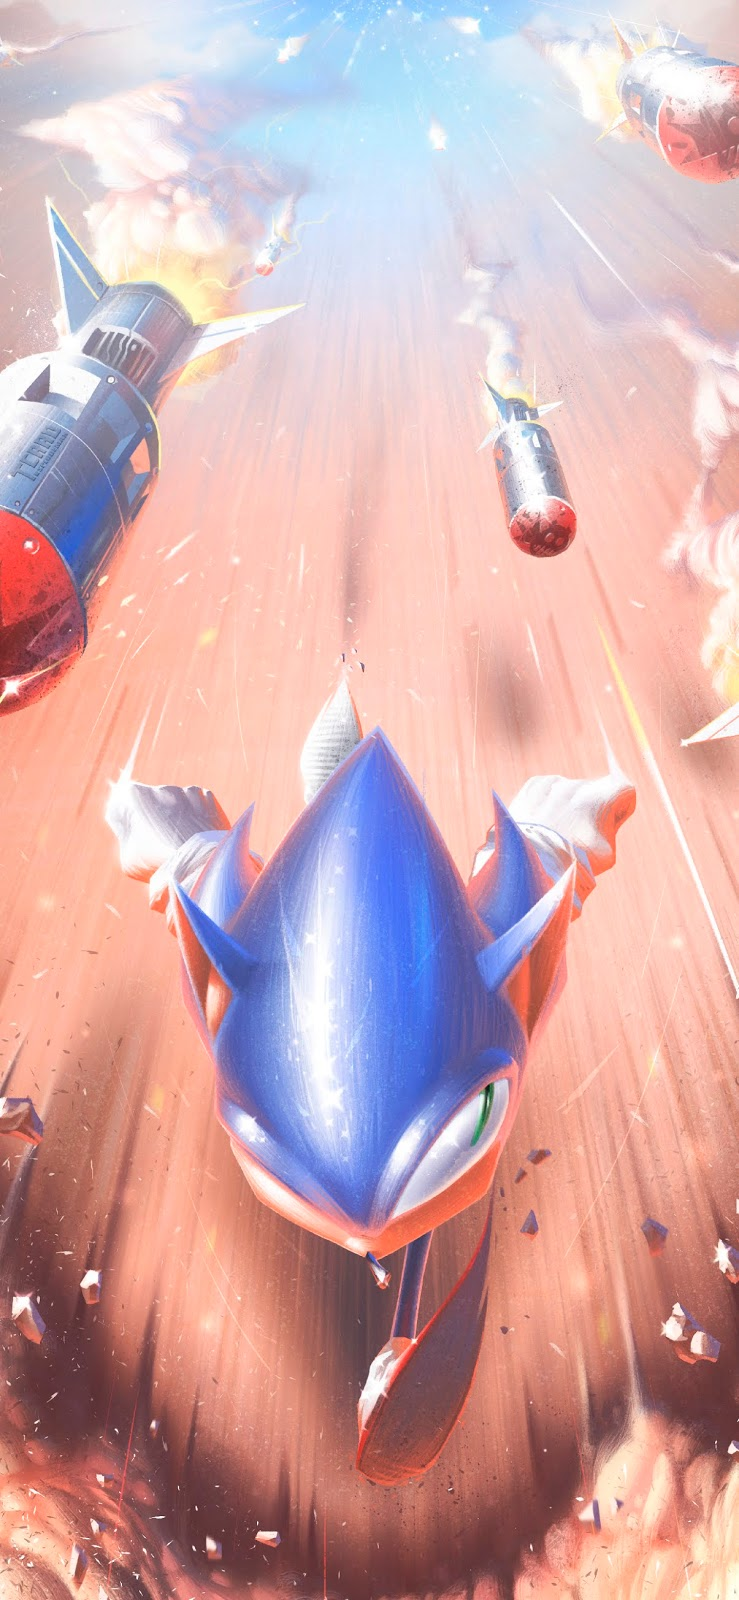 sonic-running-wallpaper-for-phone